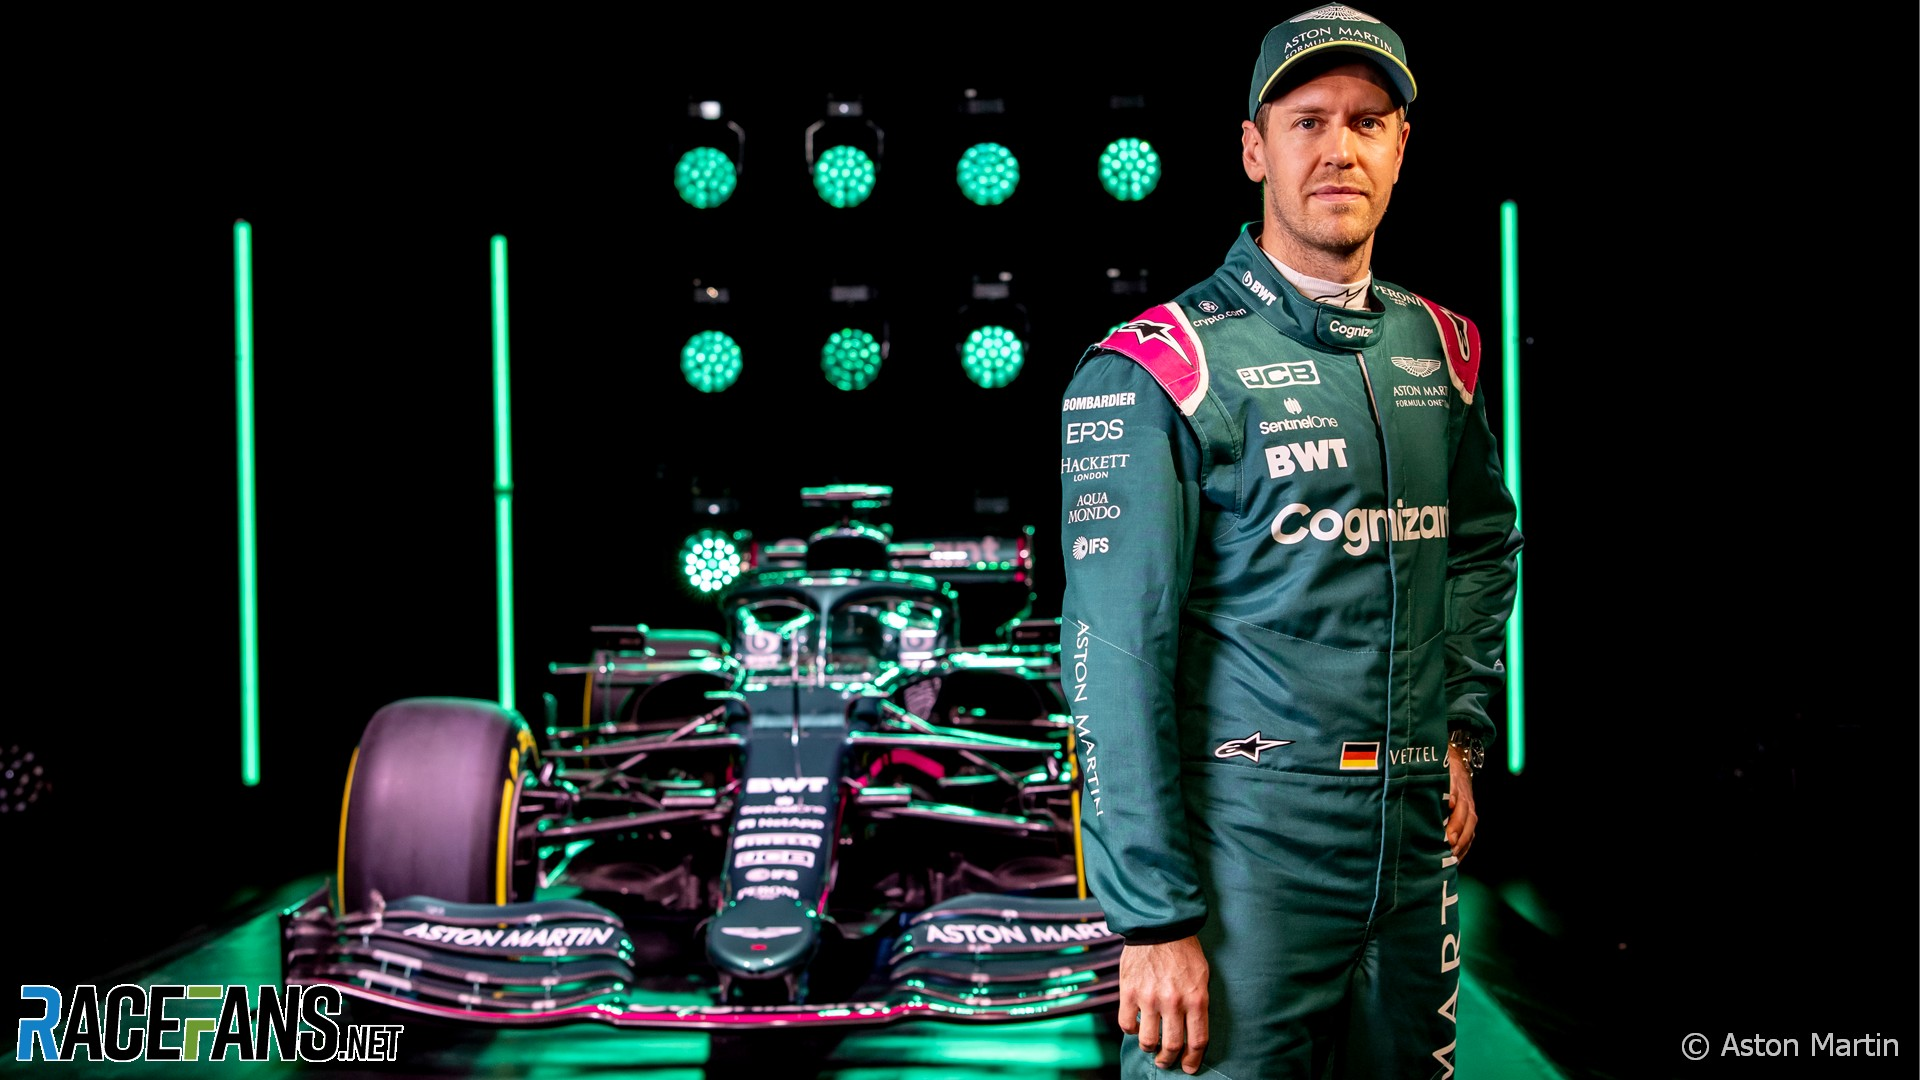 Vettel Has Very Very High Expectations For Aston Martin Move Racefans